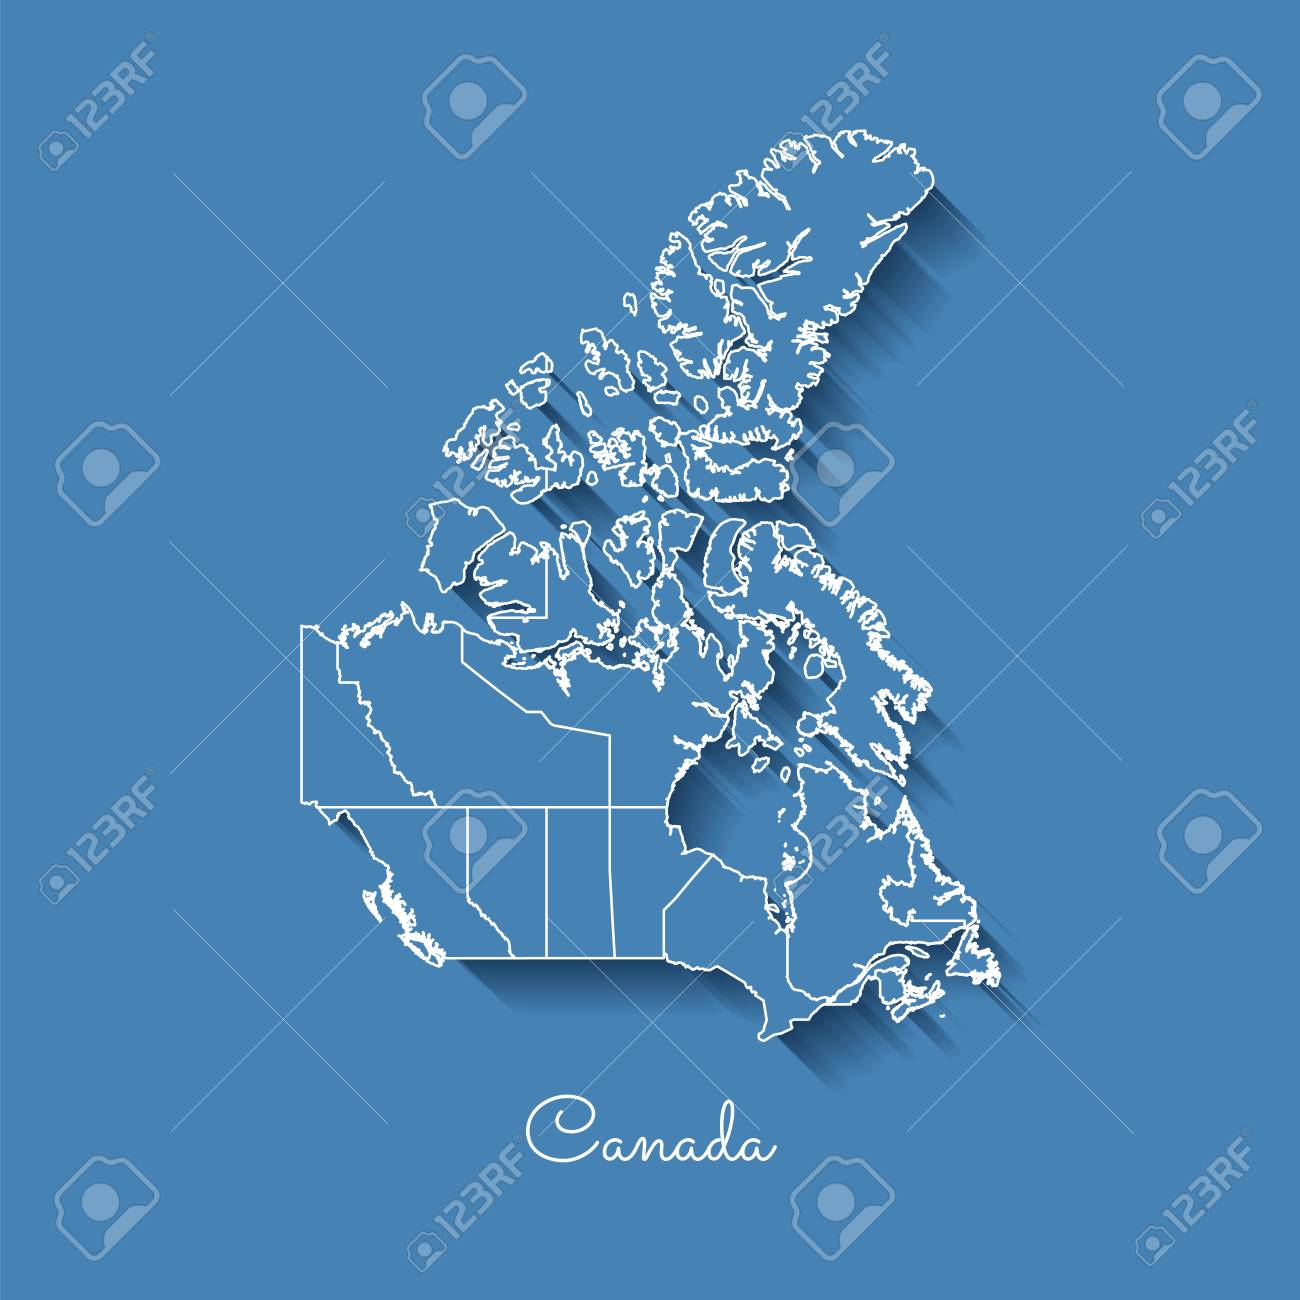 Detailed Map Of Canada.Canada Region Map Blue With White Outline And Shadow On Blue